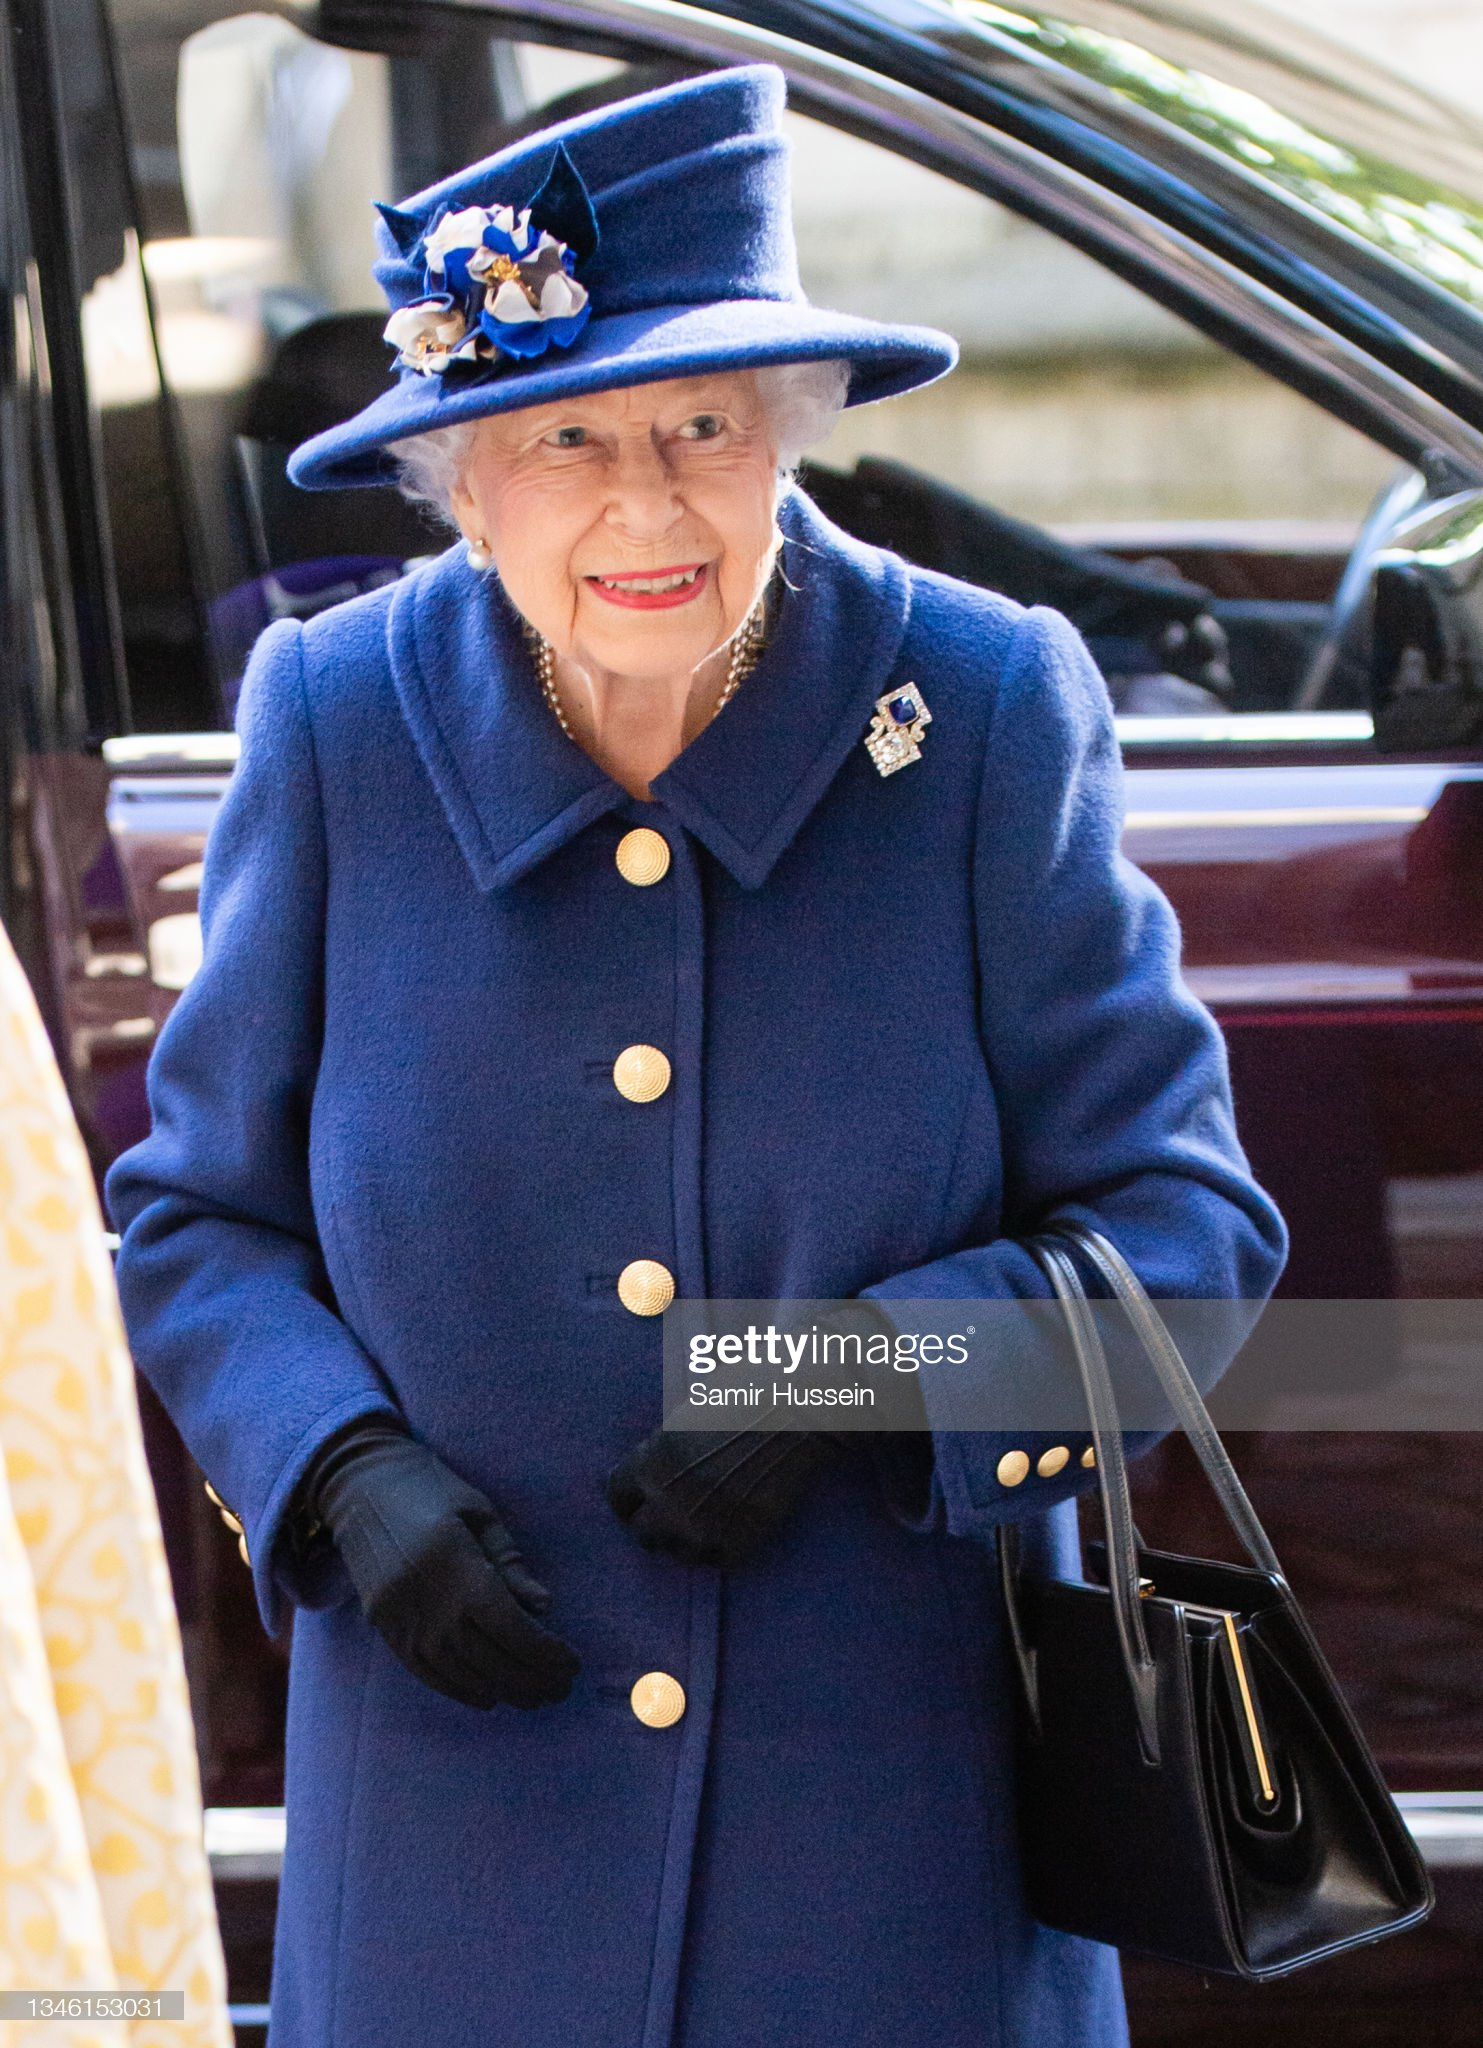 queen-elizabeth-ii-attends-a-service-of-thanksgiving-to-mark-the-of-picture-id1346153031